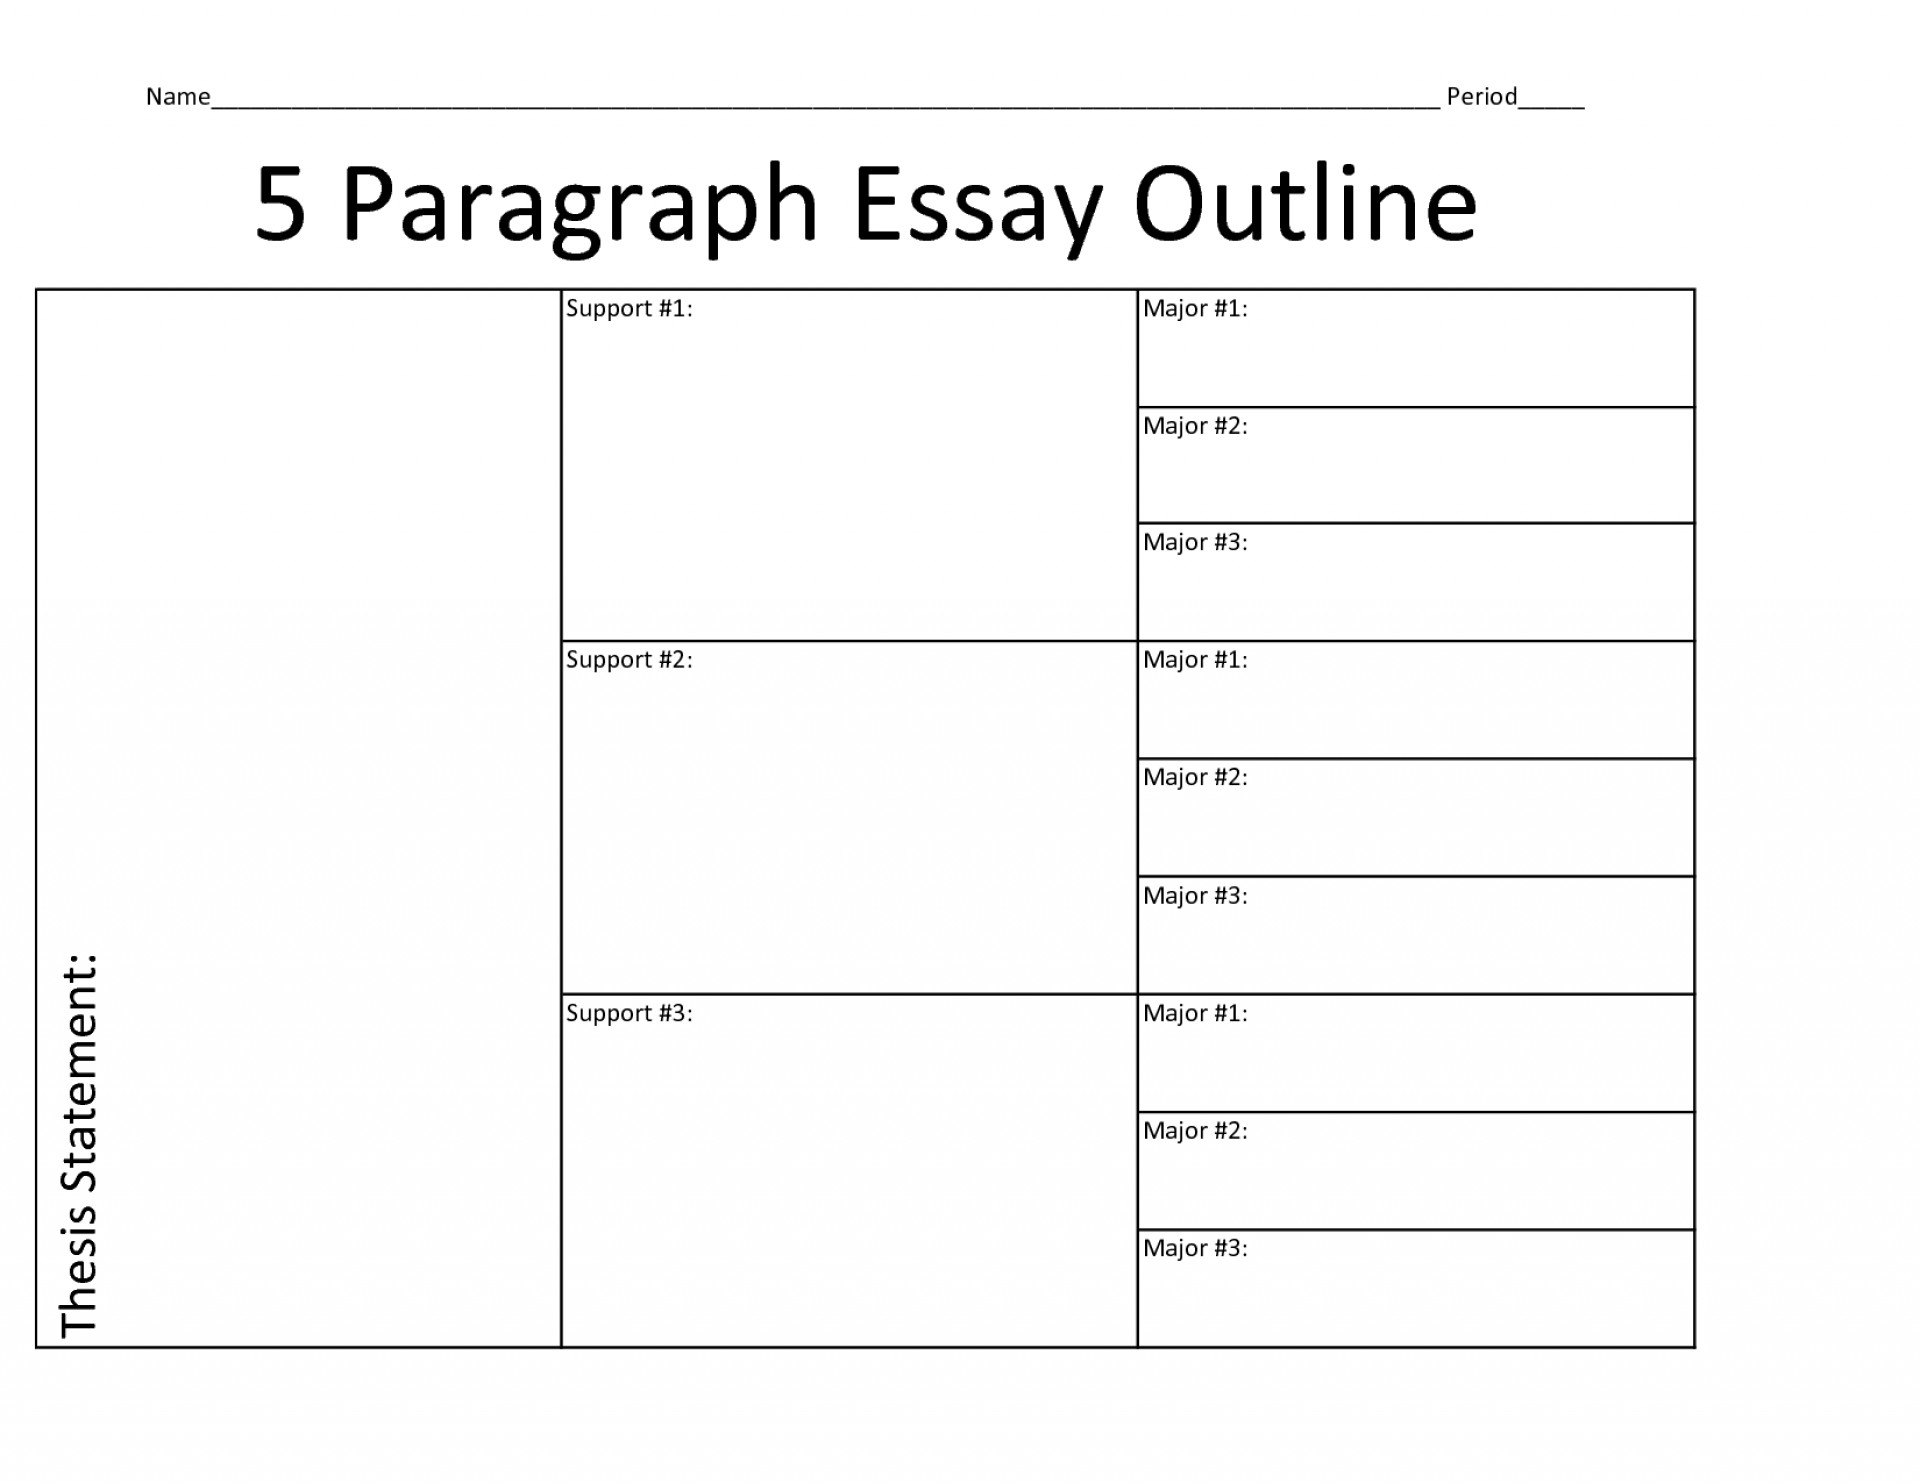 019 Graphic Organizers Executive Functioning Mr Brown039s Paragraph Essay Outline L Amazing 5 Template Pdf Free 1920